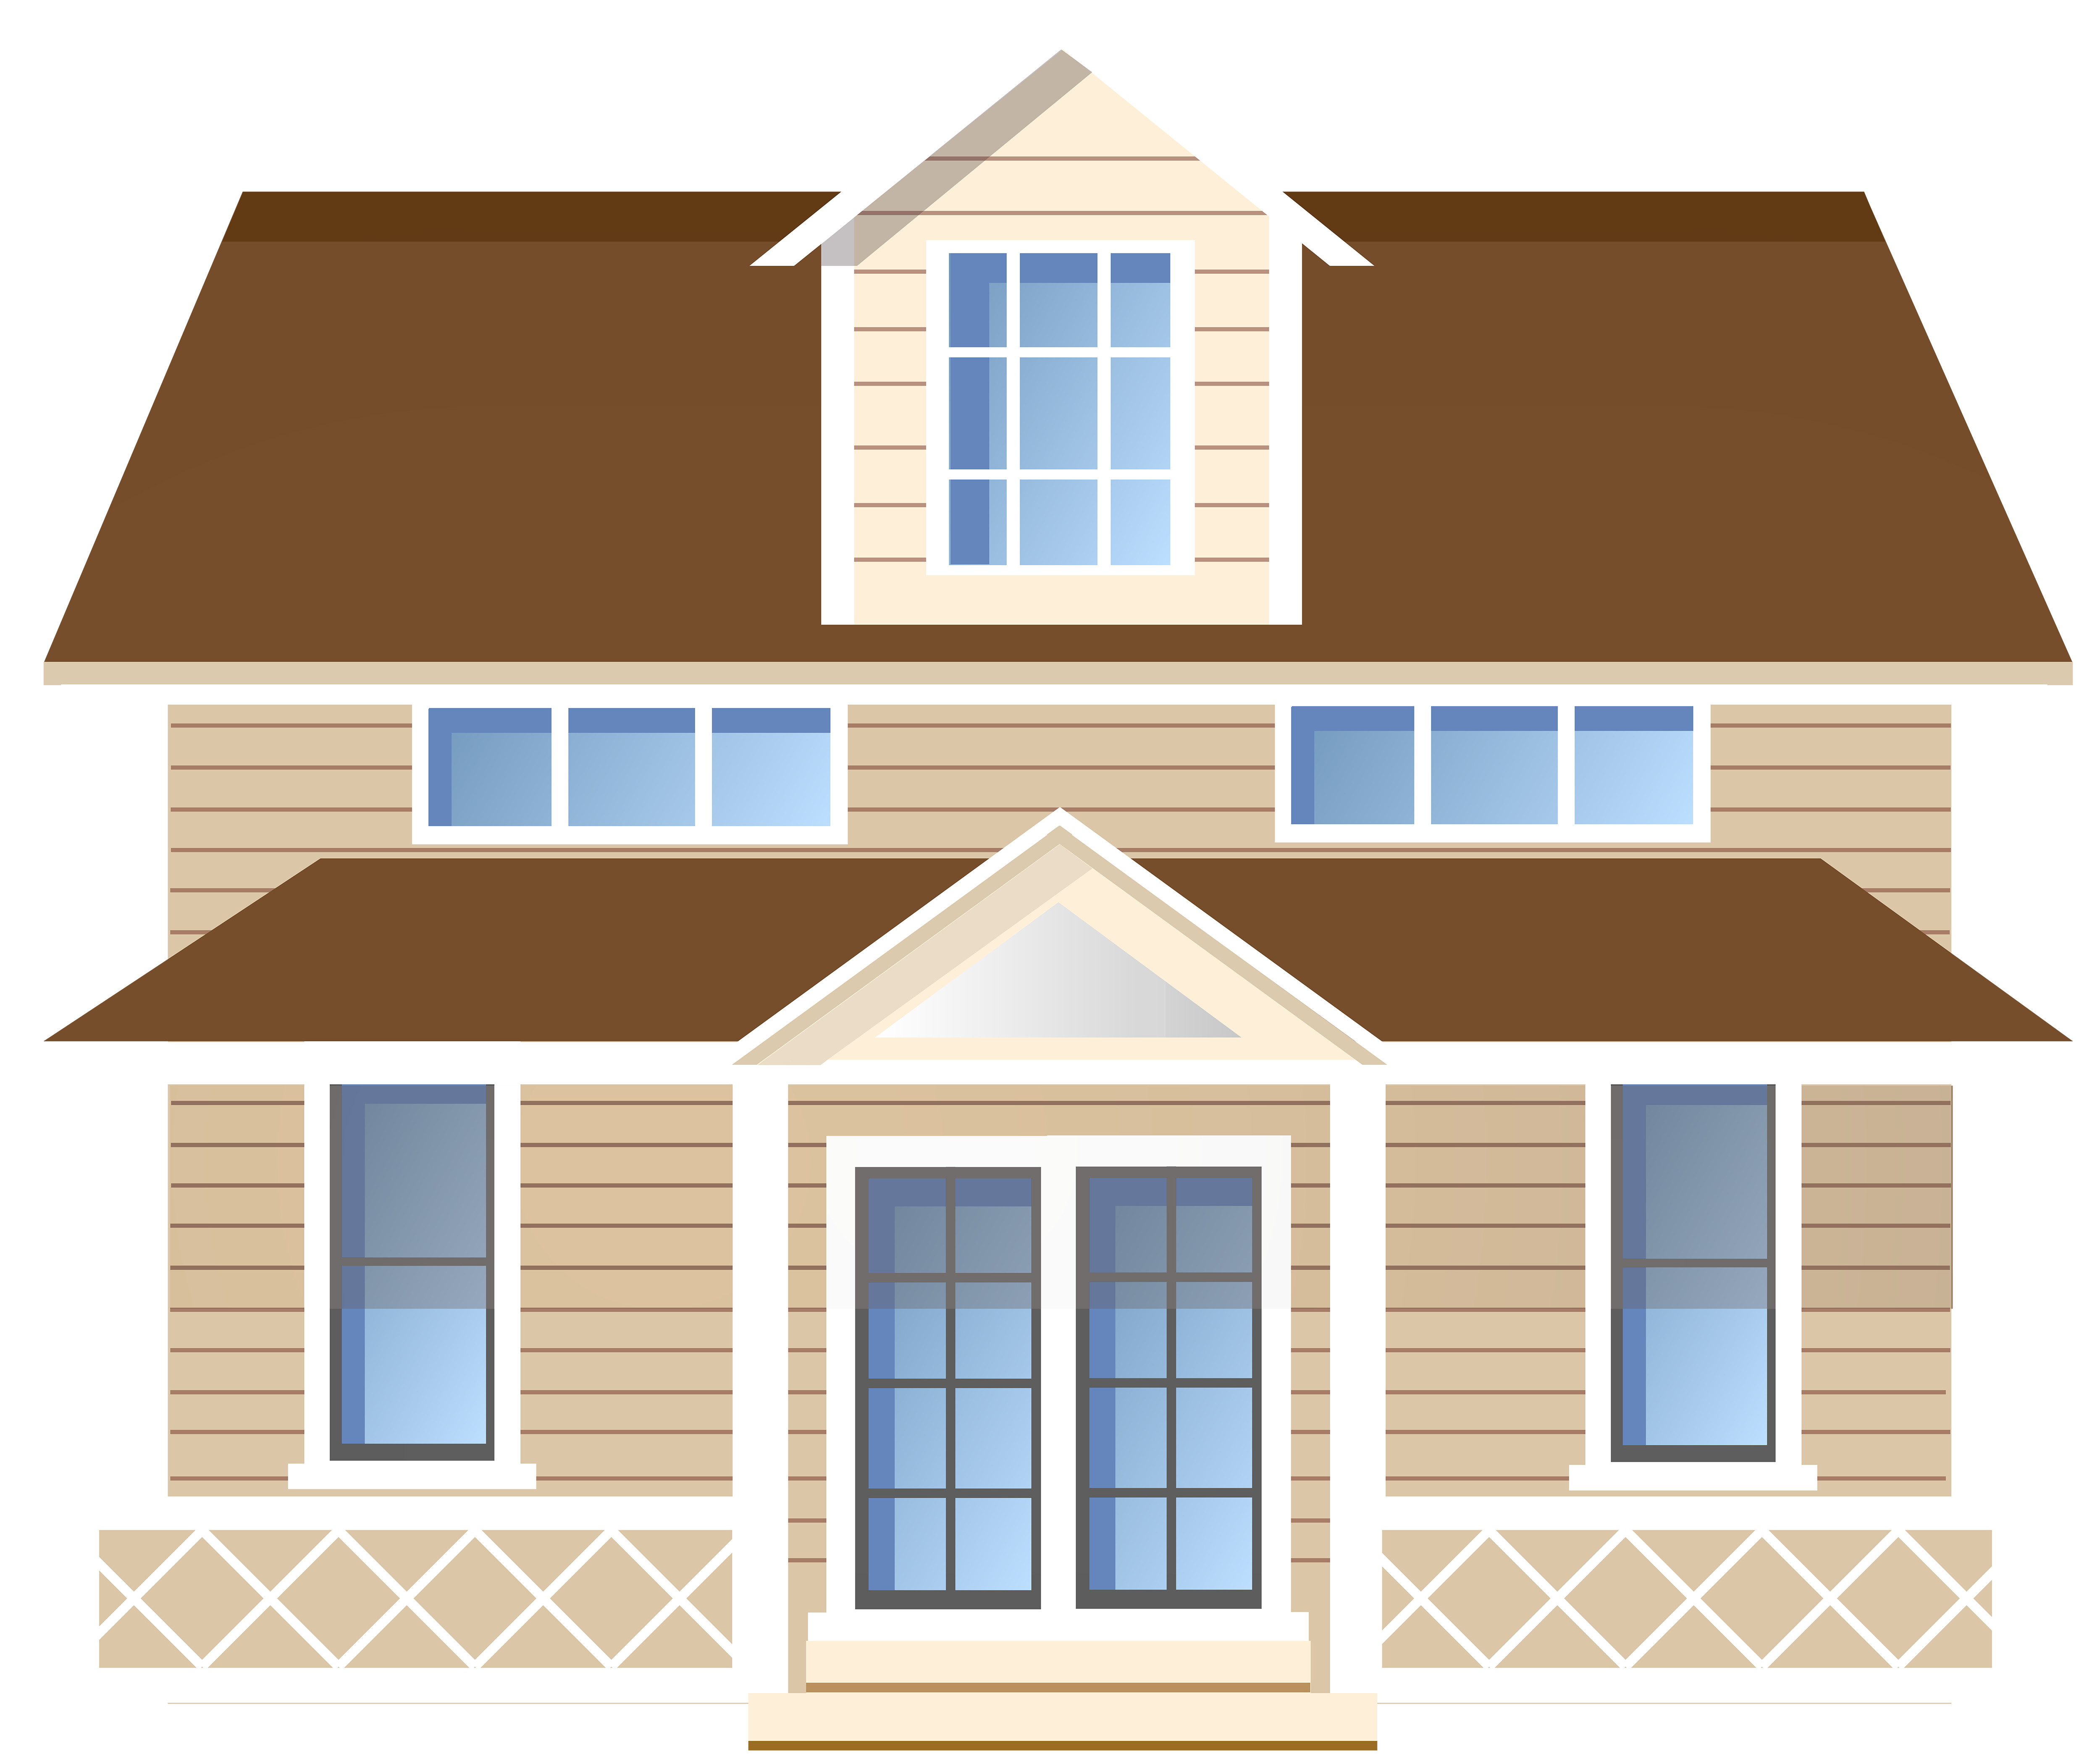 Modern home clipart png freeuse Home clipart modern house, Home modern house Transparent ... png freeuse